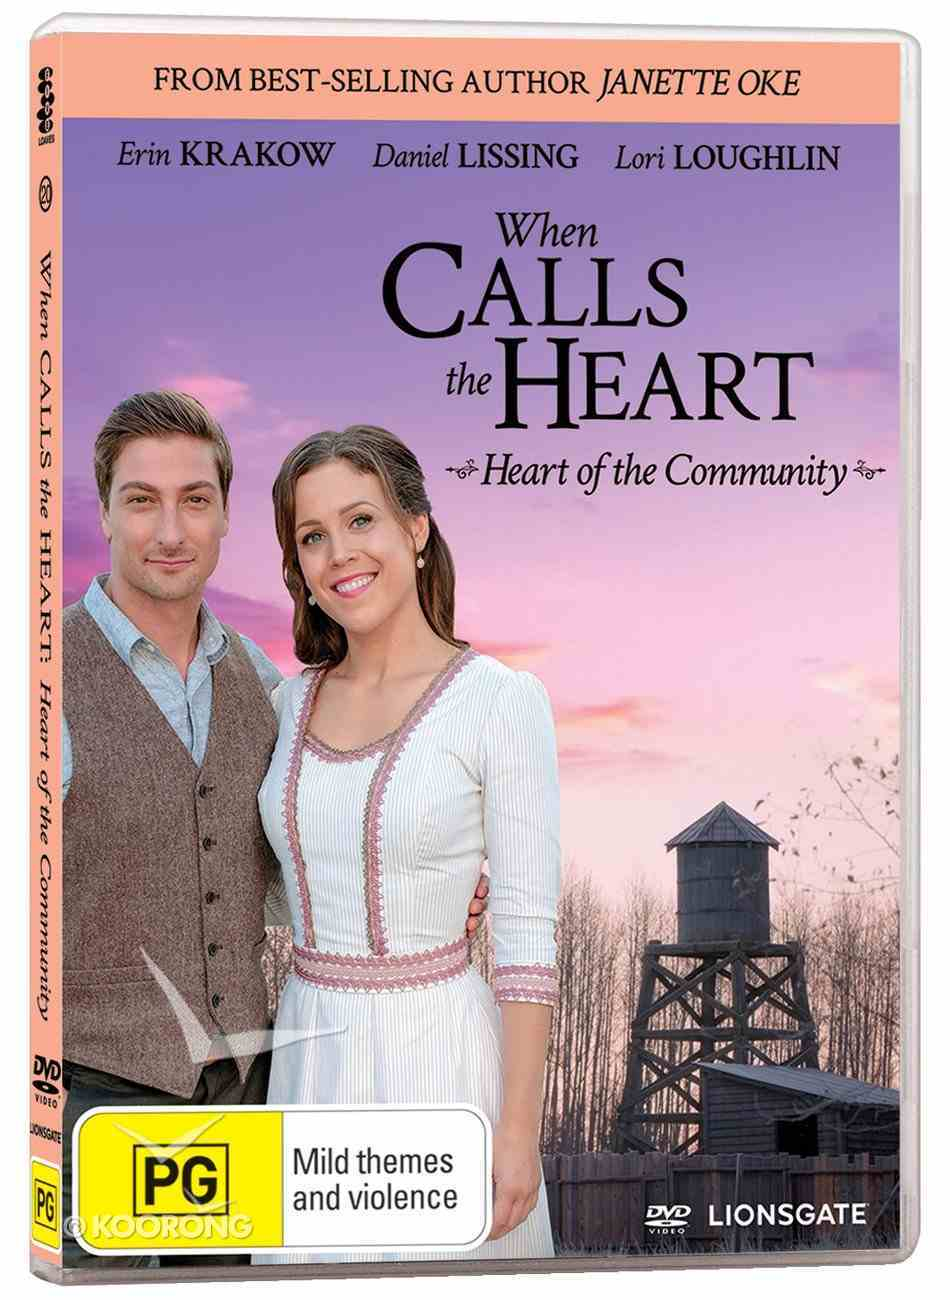 When Calls the Heart #20: The Heart of the Community DVD